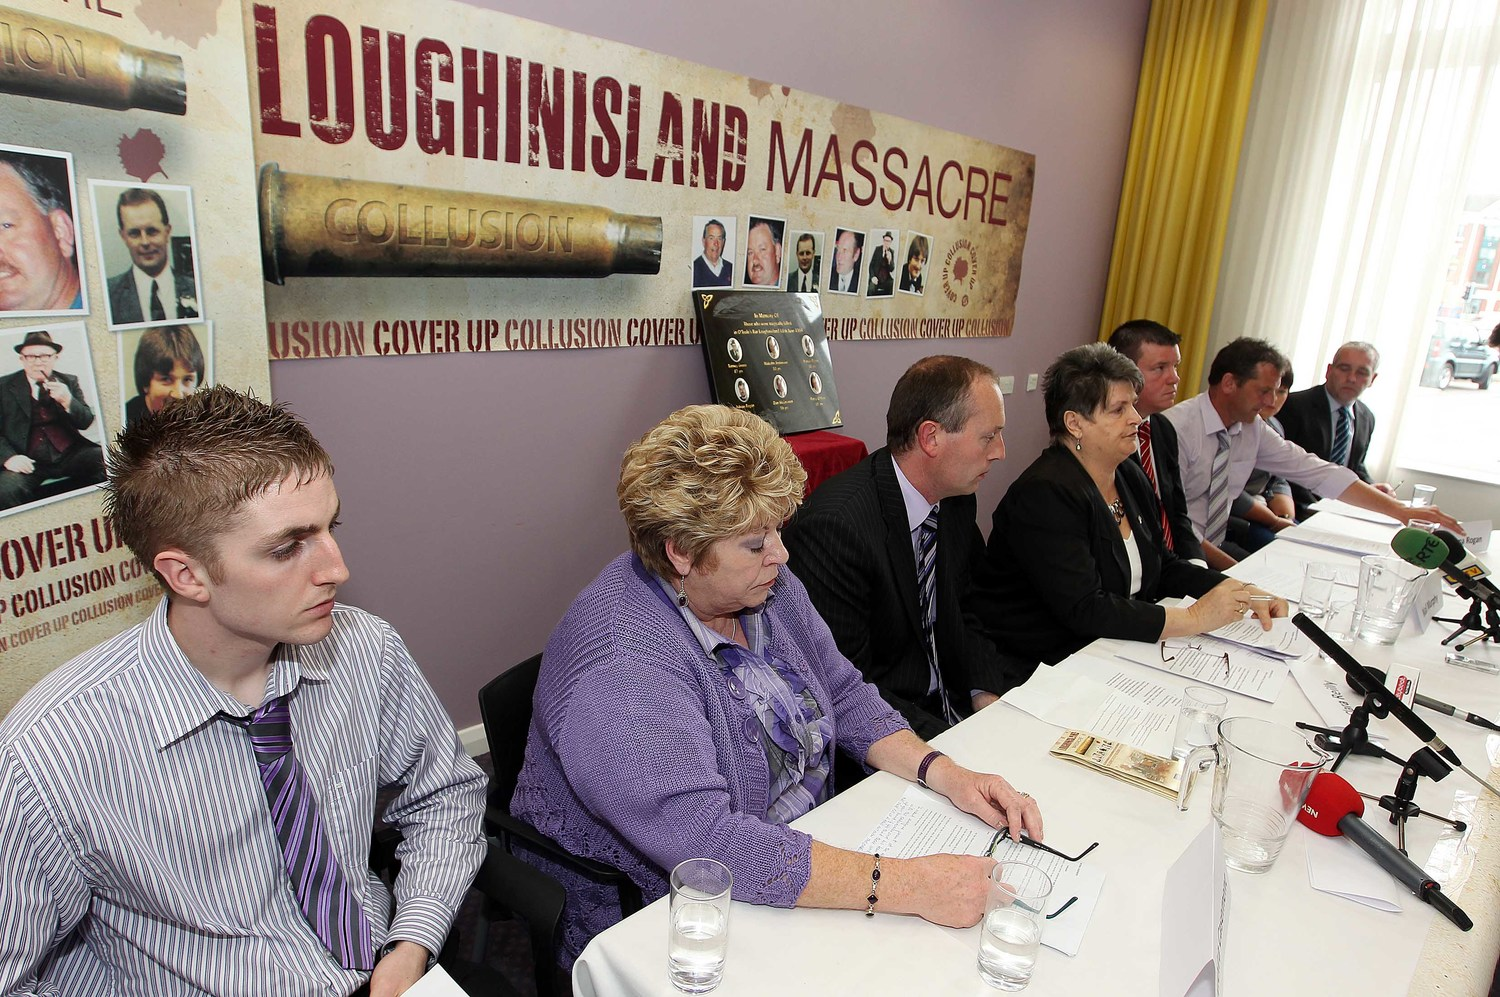 loughinisland families reject police ombudsman's report as a whitewash